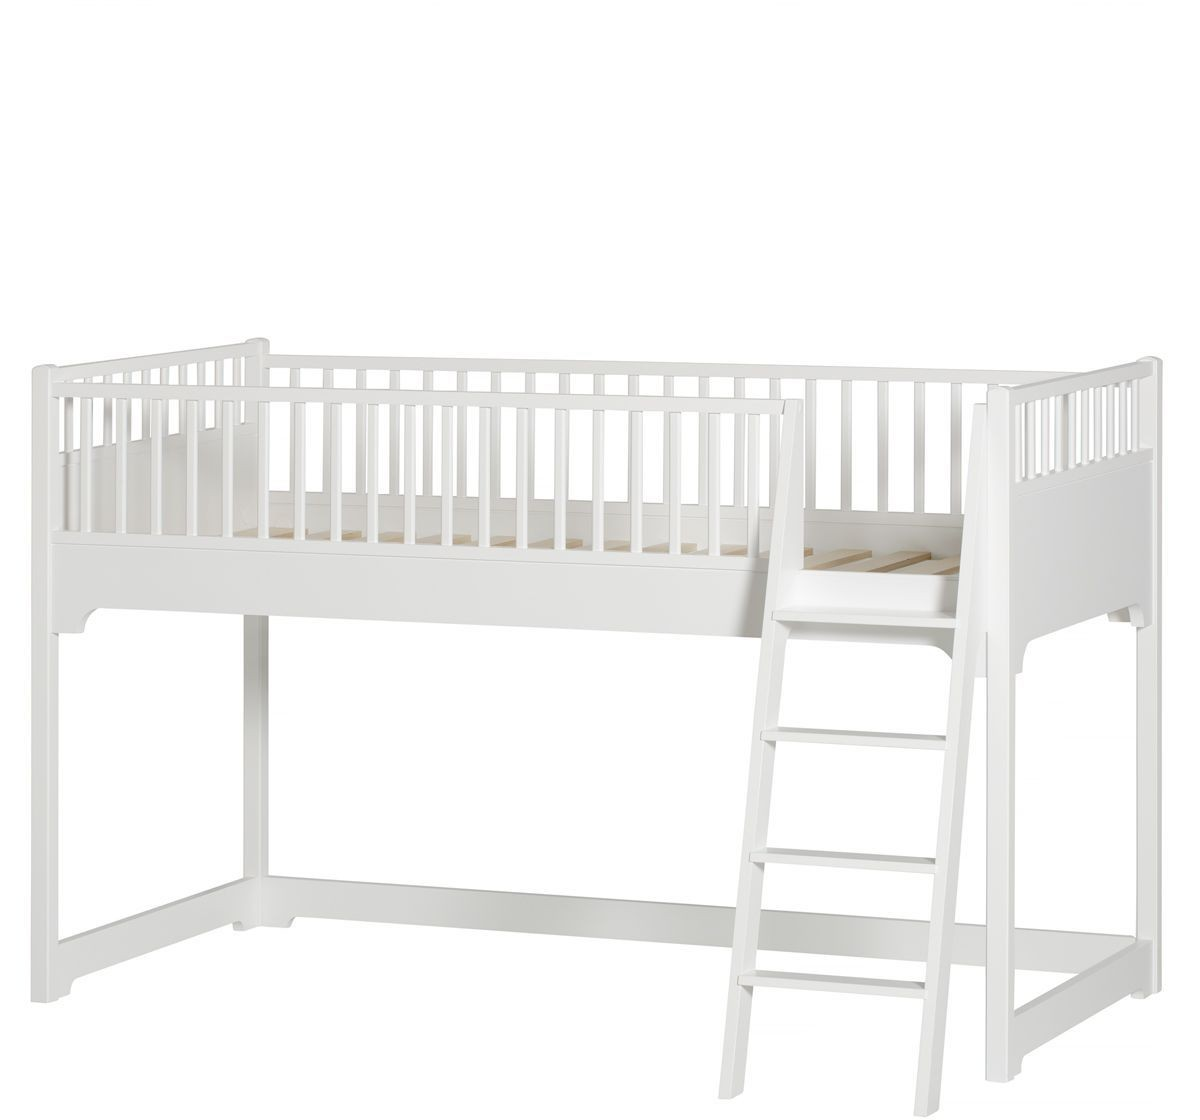 Seaside Halbhohes Hochbett Oliver Furniture Kleine Fabriek